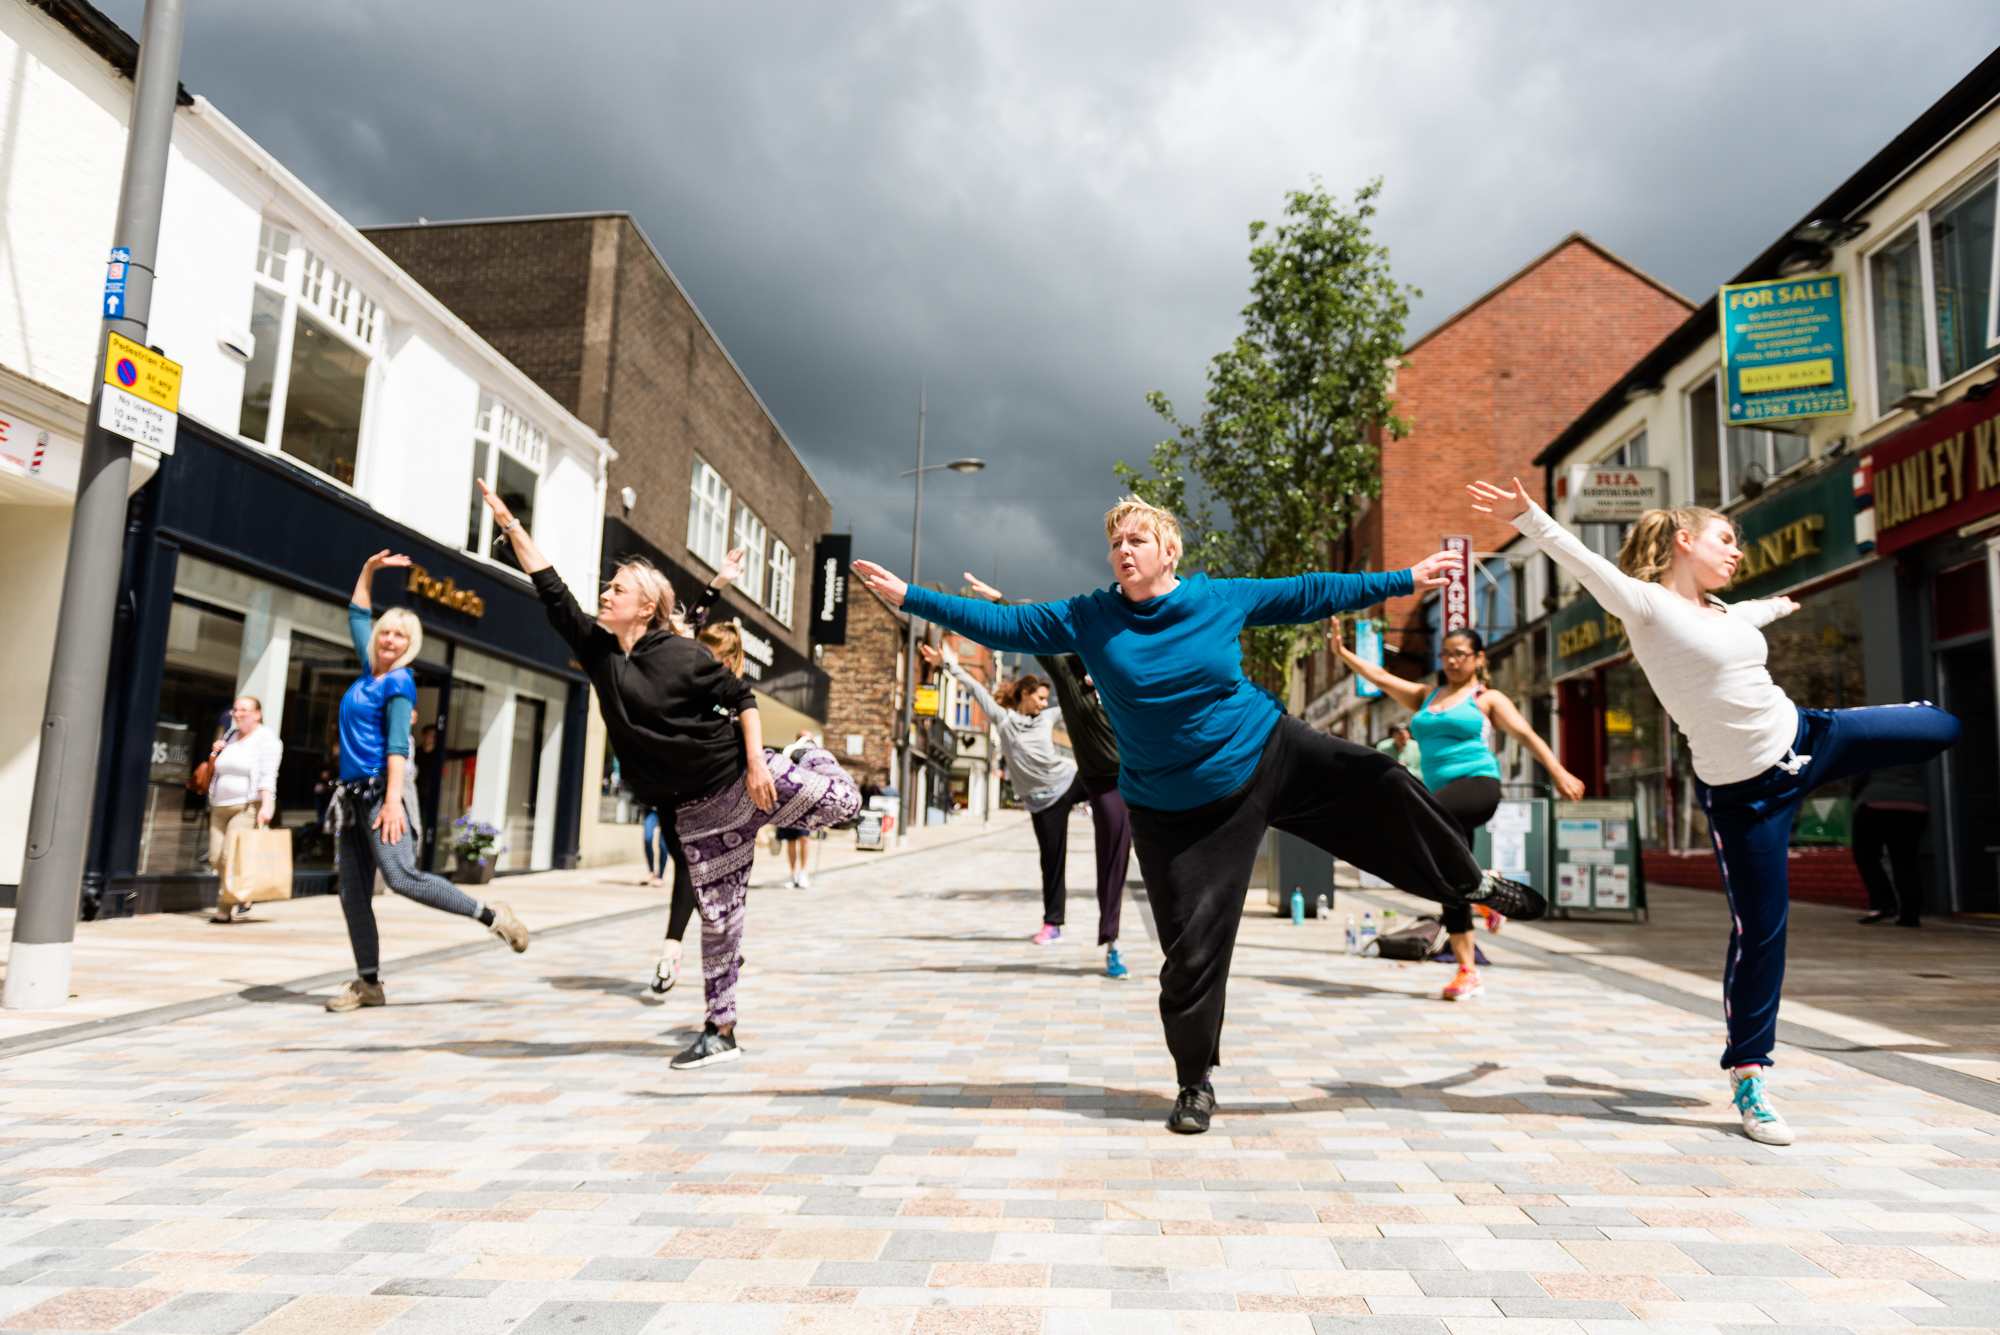 Restoke - Big Dance Rehearsal - Dance Fridays - Dancing in the Street - The Regent Theatre,  Picadilly, Hanley - Documentary Photography by Jenny Harper-14.jpg